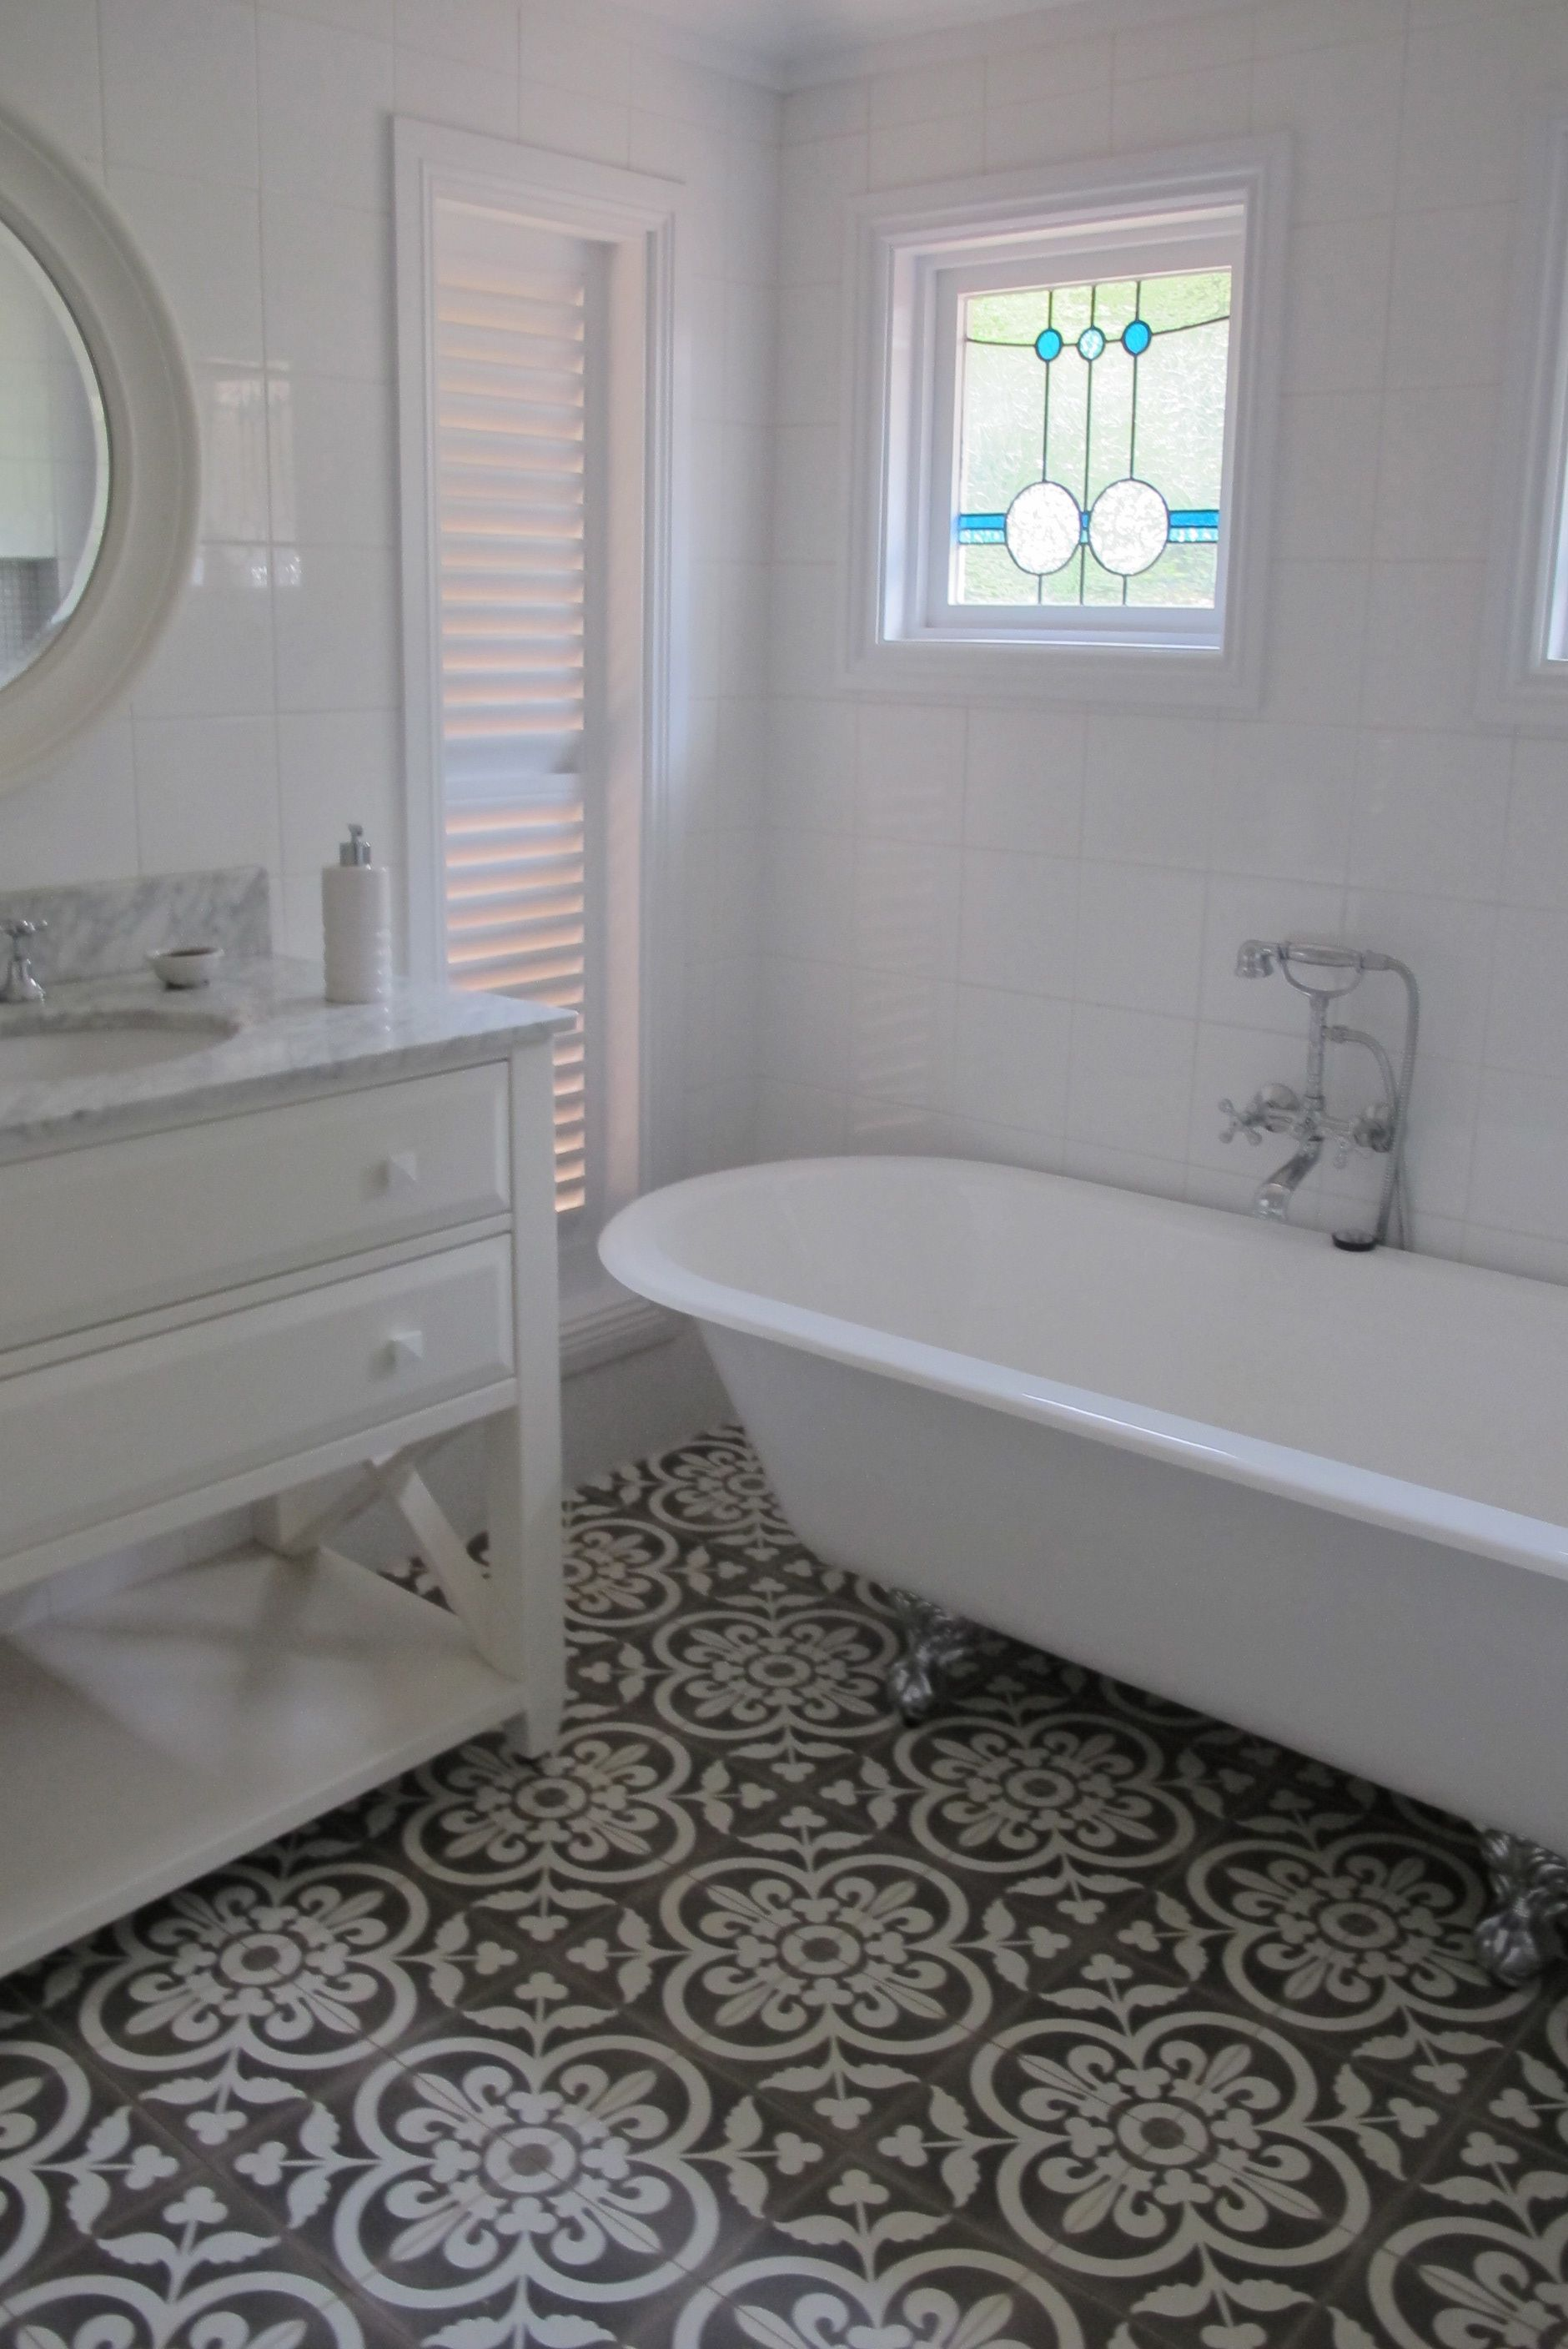 Perfect Moroccan Style Floor Tiles For Bathroom Inspiration.